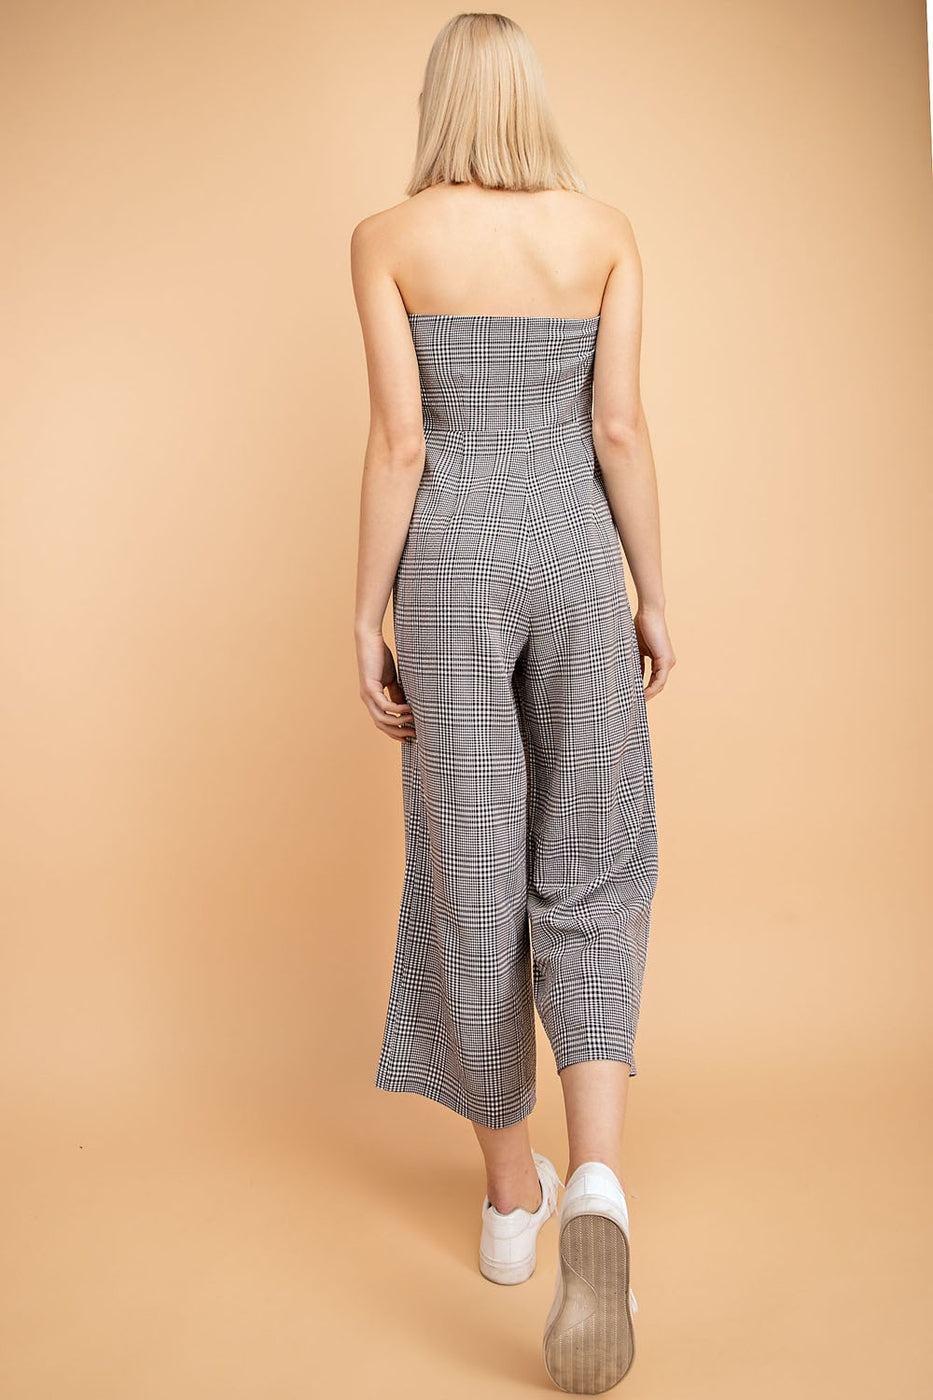 Strapless Plaid Culotte Jumpsuit With Front Twist In Black-White Siin Bees